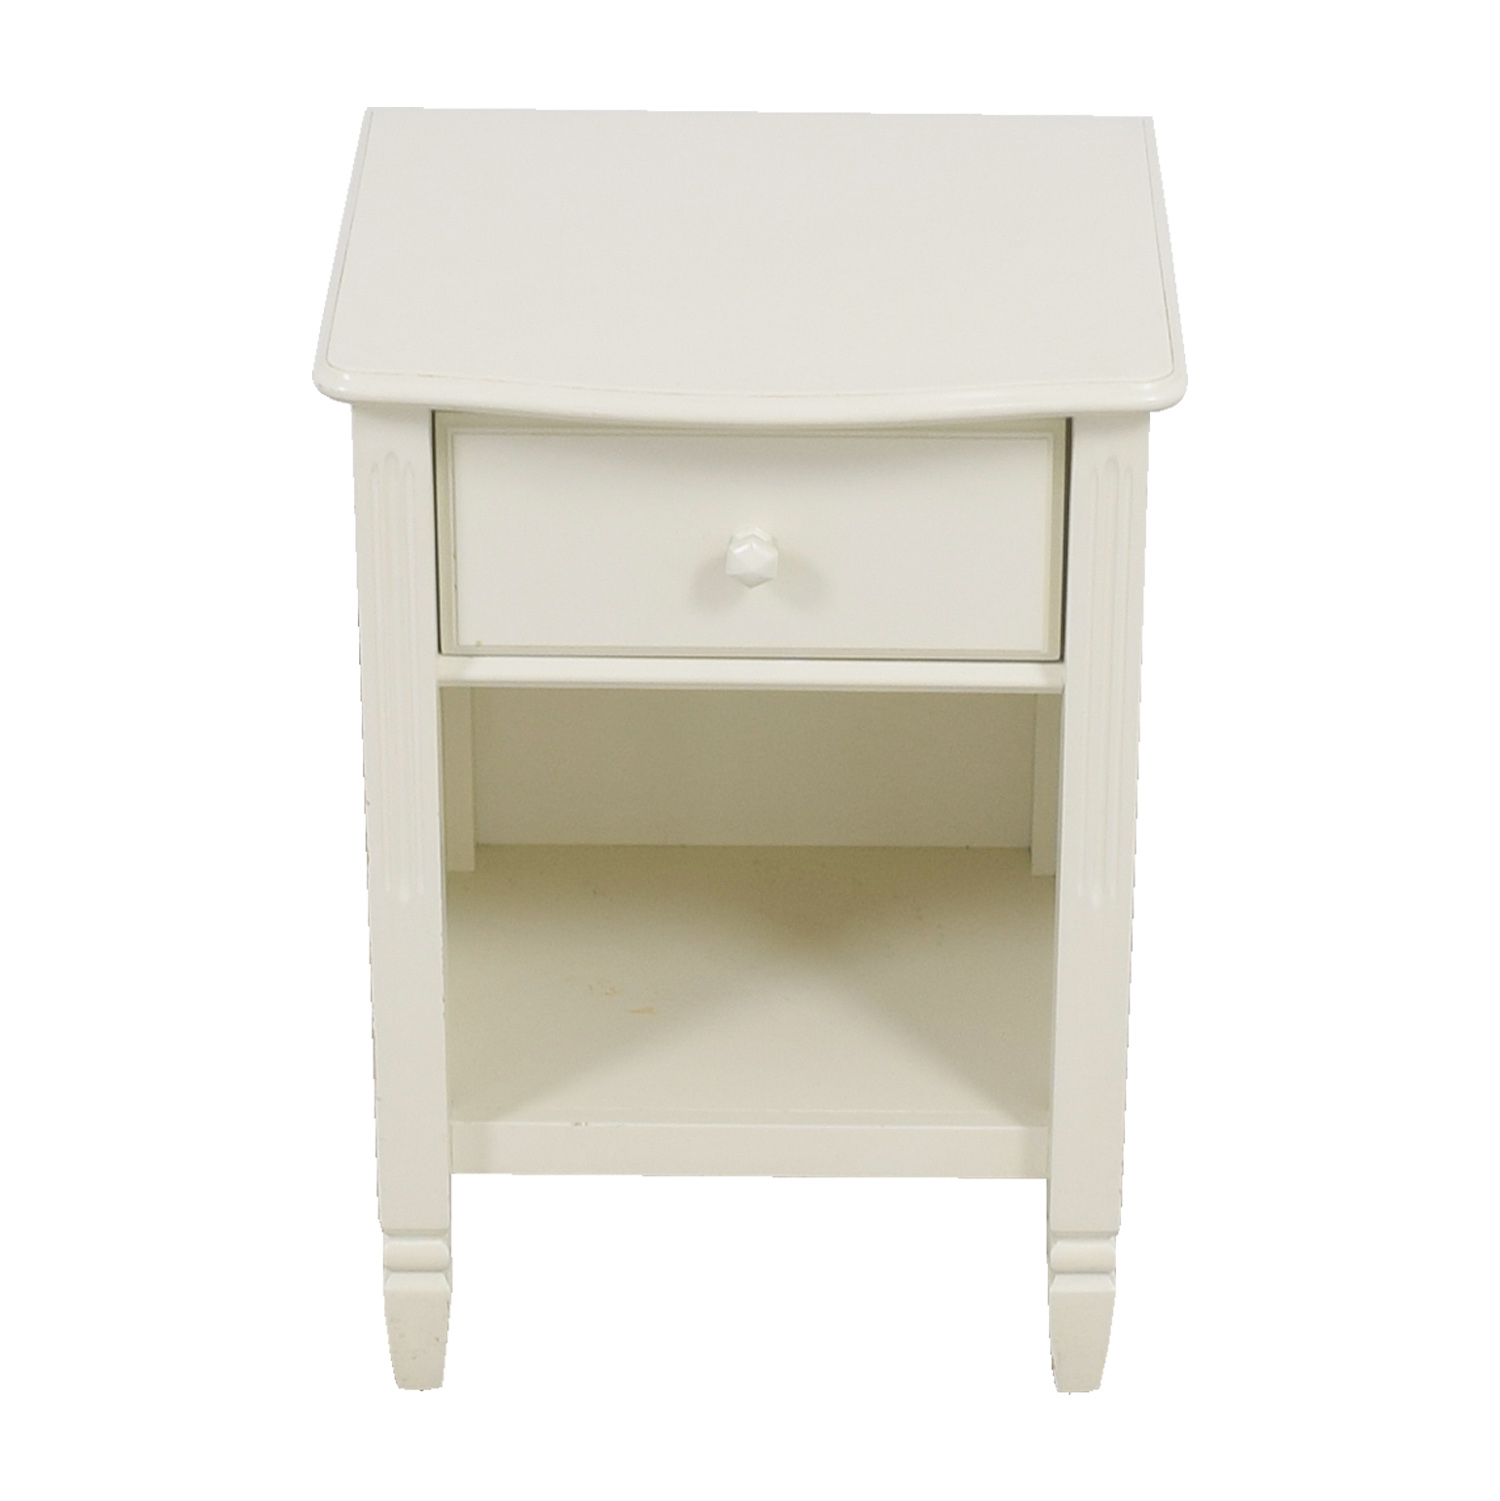 Pottery Barn Madeline White Single Drawer Nightstand sale